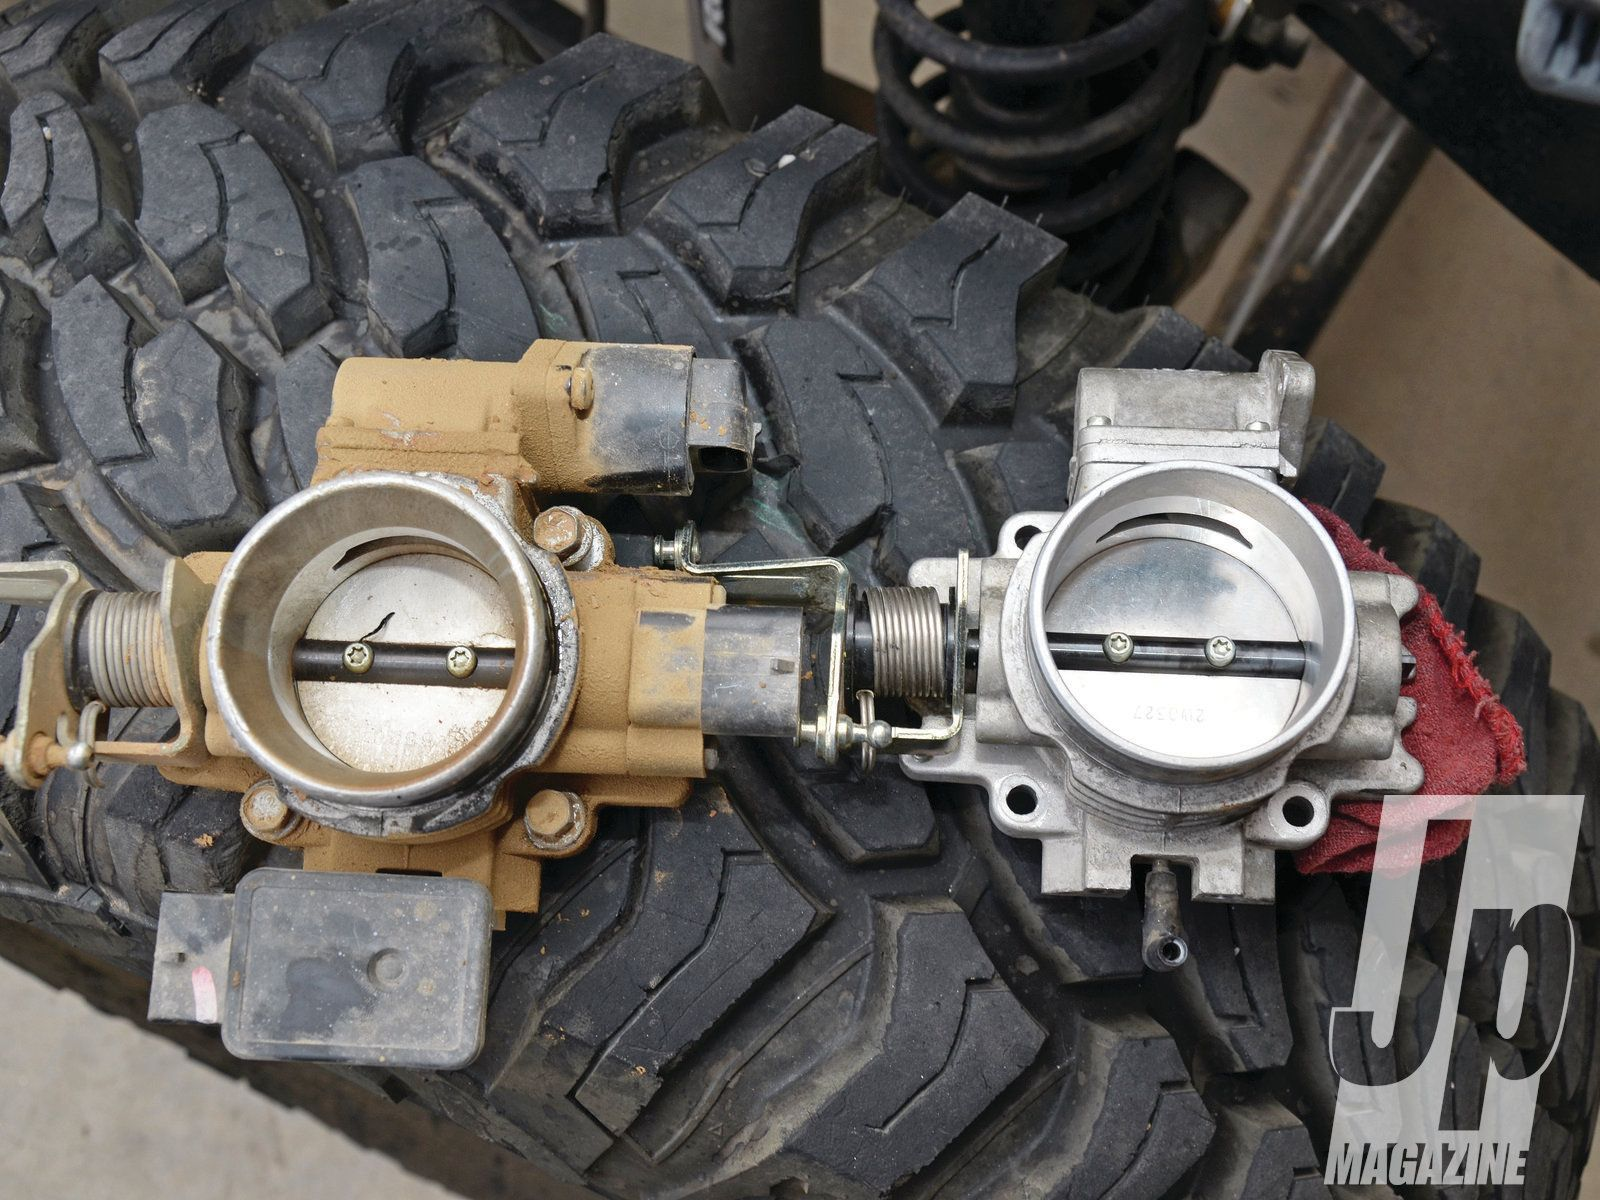 Dethrottled: Throttle Upgrade - 4.0L #throttle for 2.5L ...